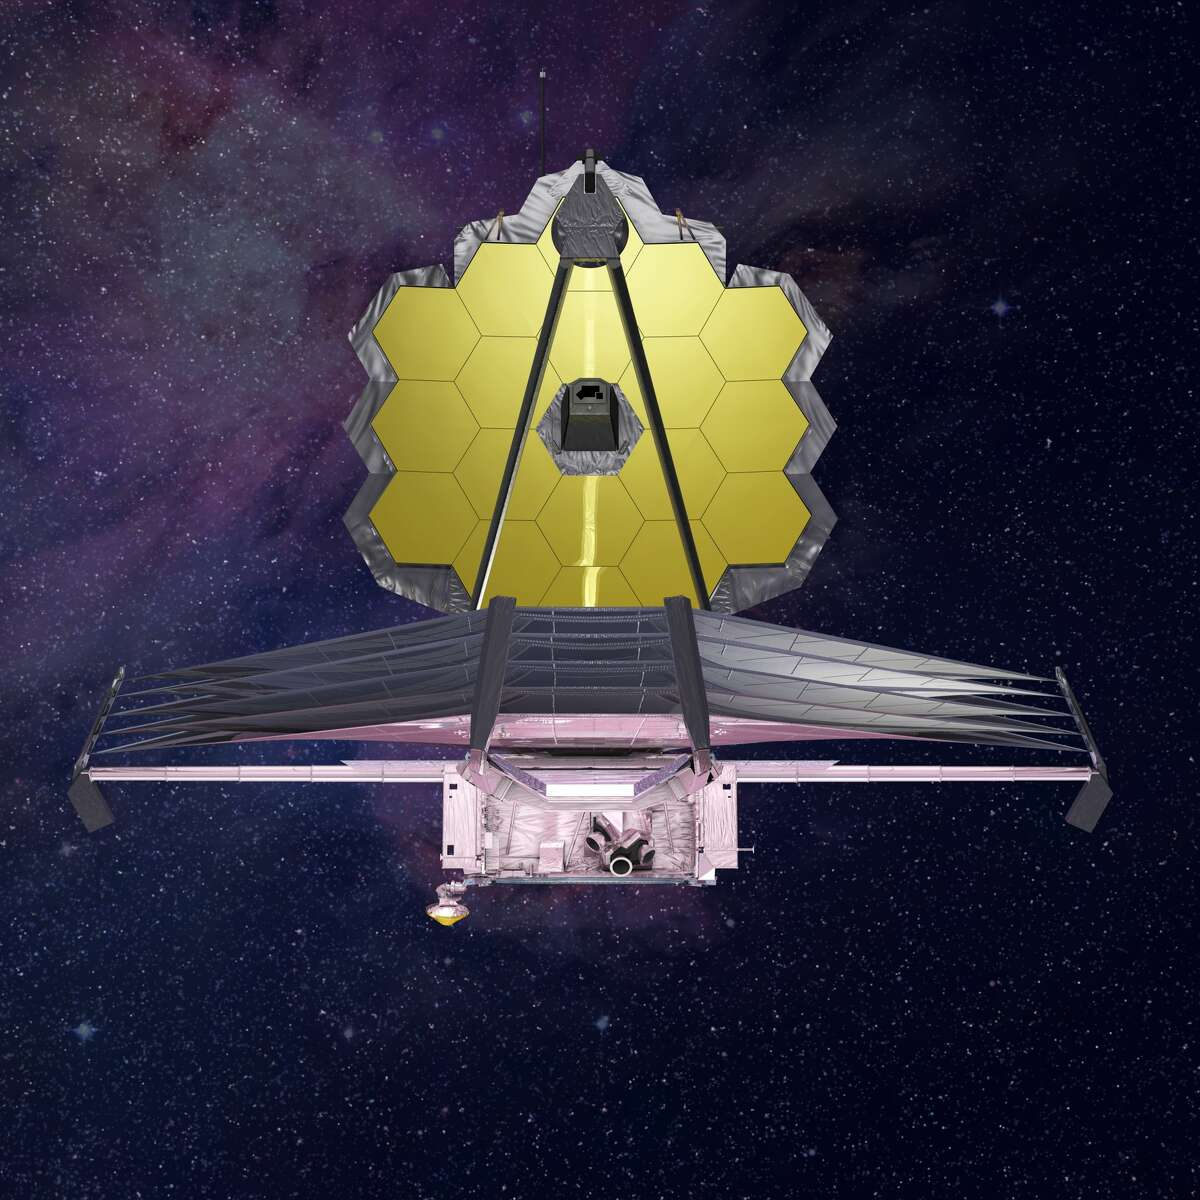 Problems have driven up development costs of NASA's James Webb Space Telescope to nearly $9 billion.